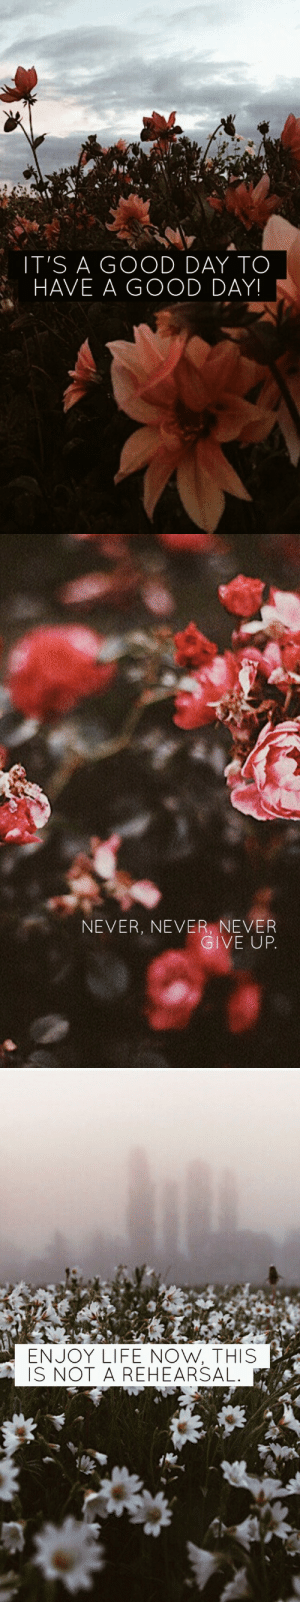 Life, Good, and Never: IT'S A GOOD DAY TO  HAVE A GOOD DAY!   NEVER, NEVER, NEVER  GIVE UP   ENJOY LIFE NOW, THIS  IS NOT A REHEARSAL